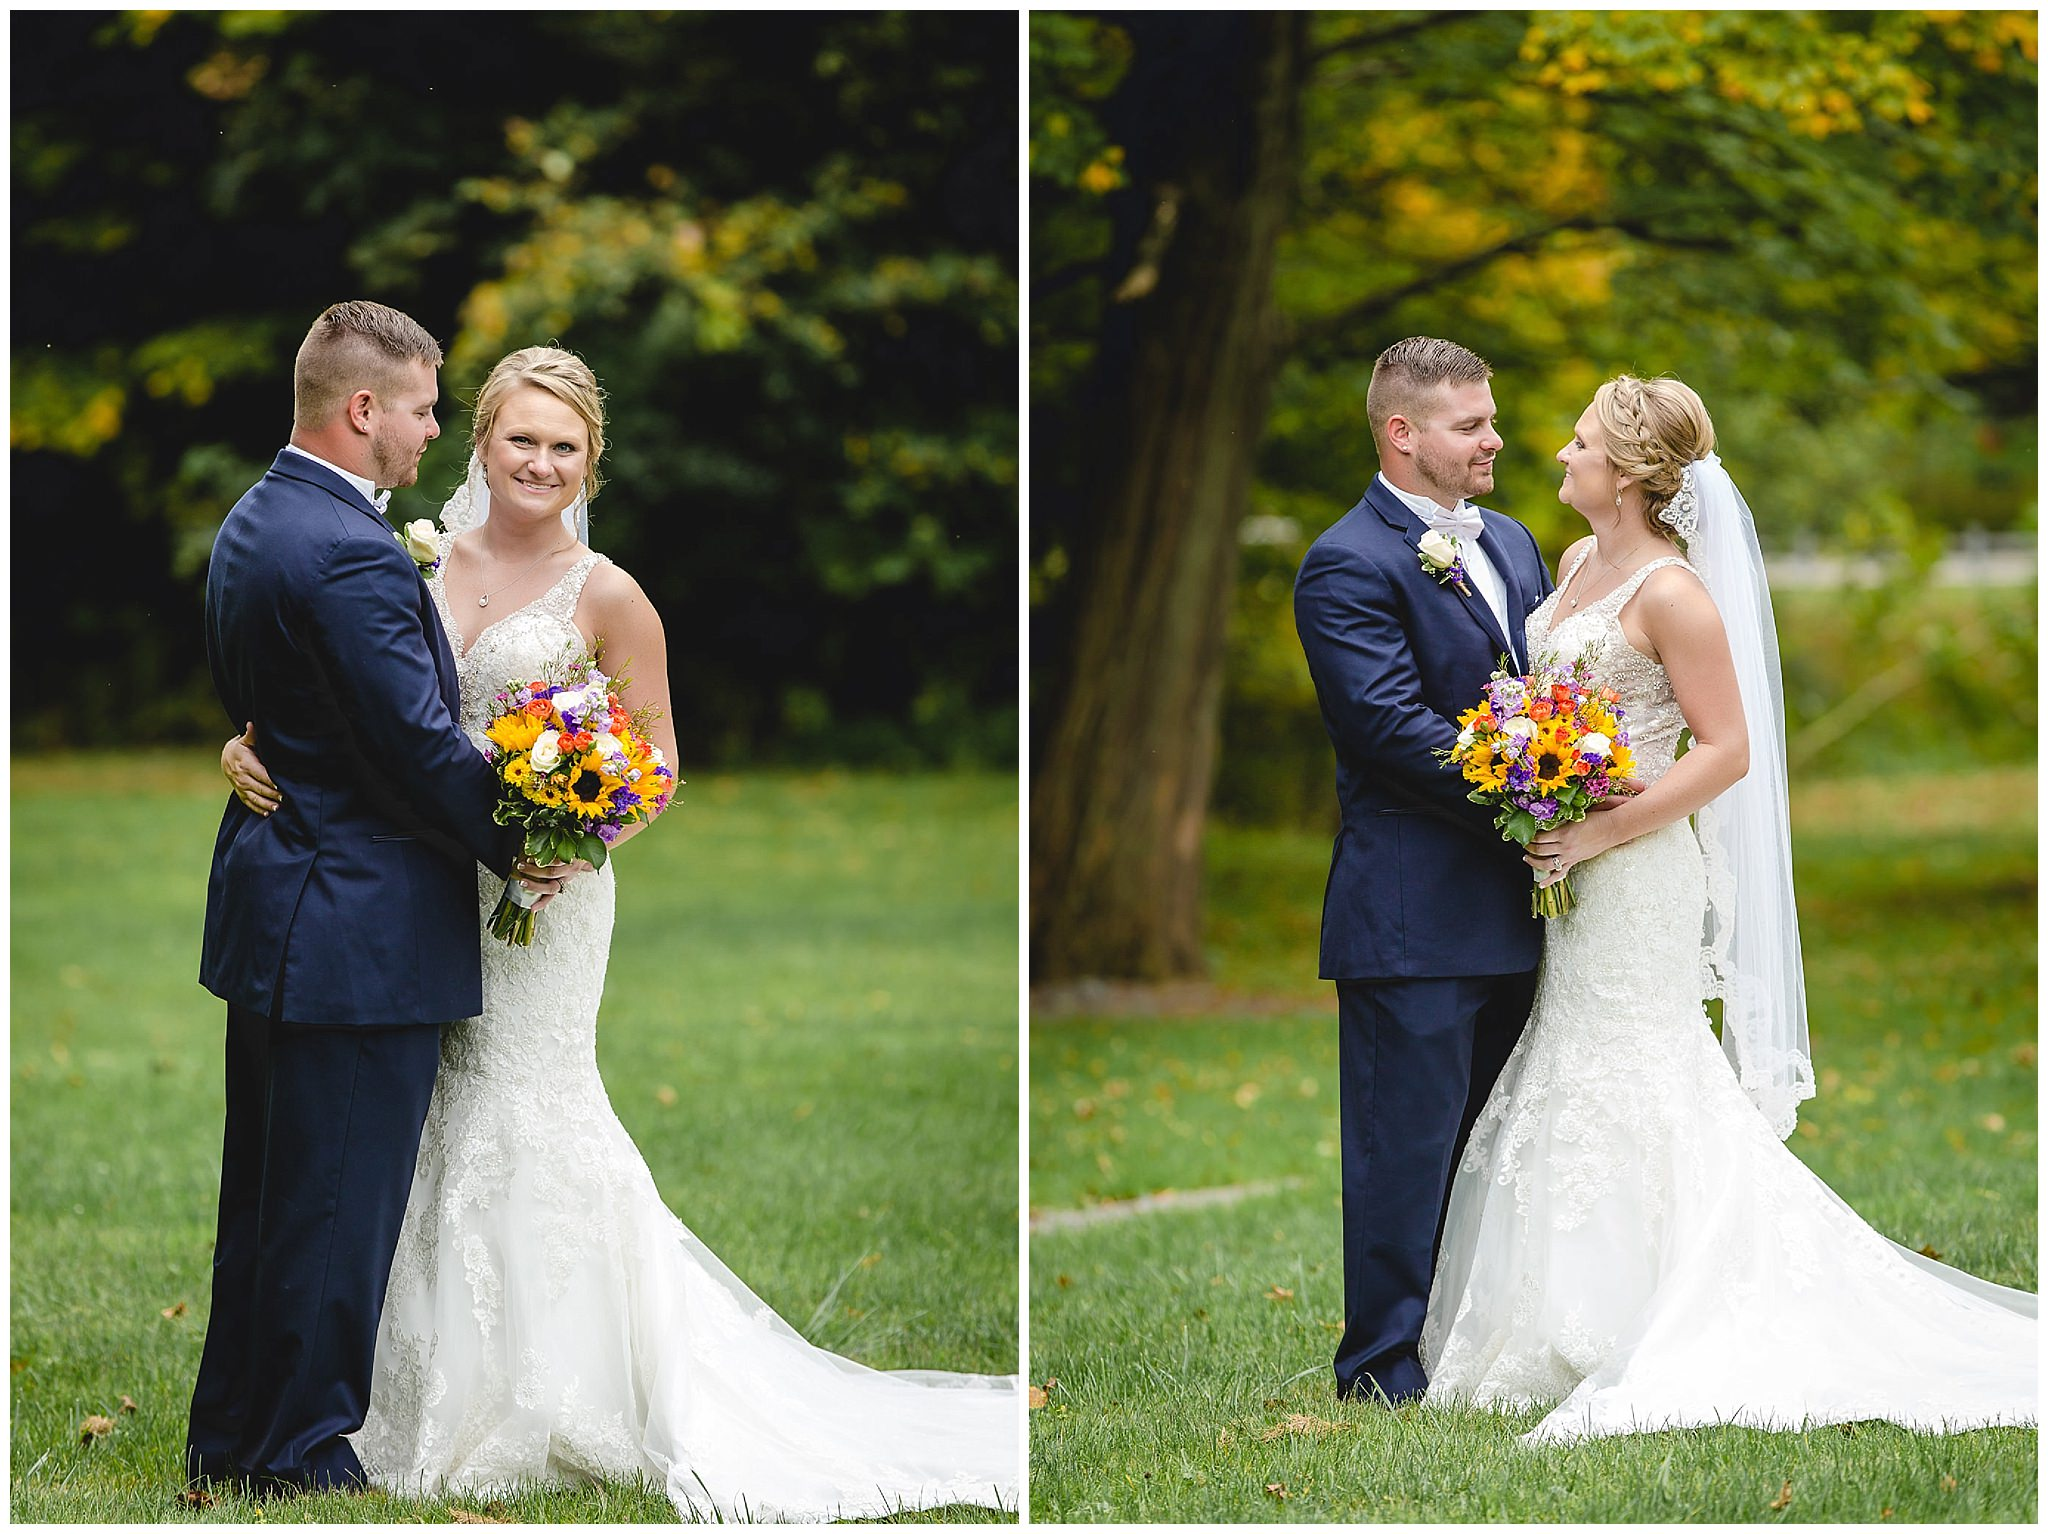 Bride and groom pose for photos in Moon Township